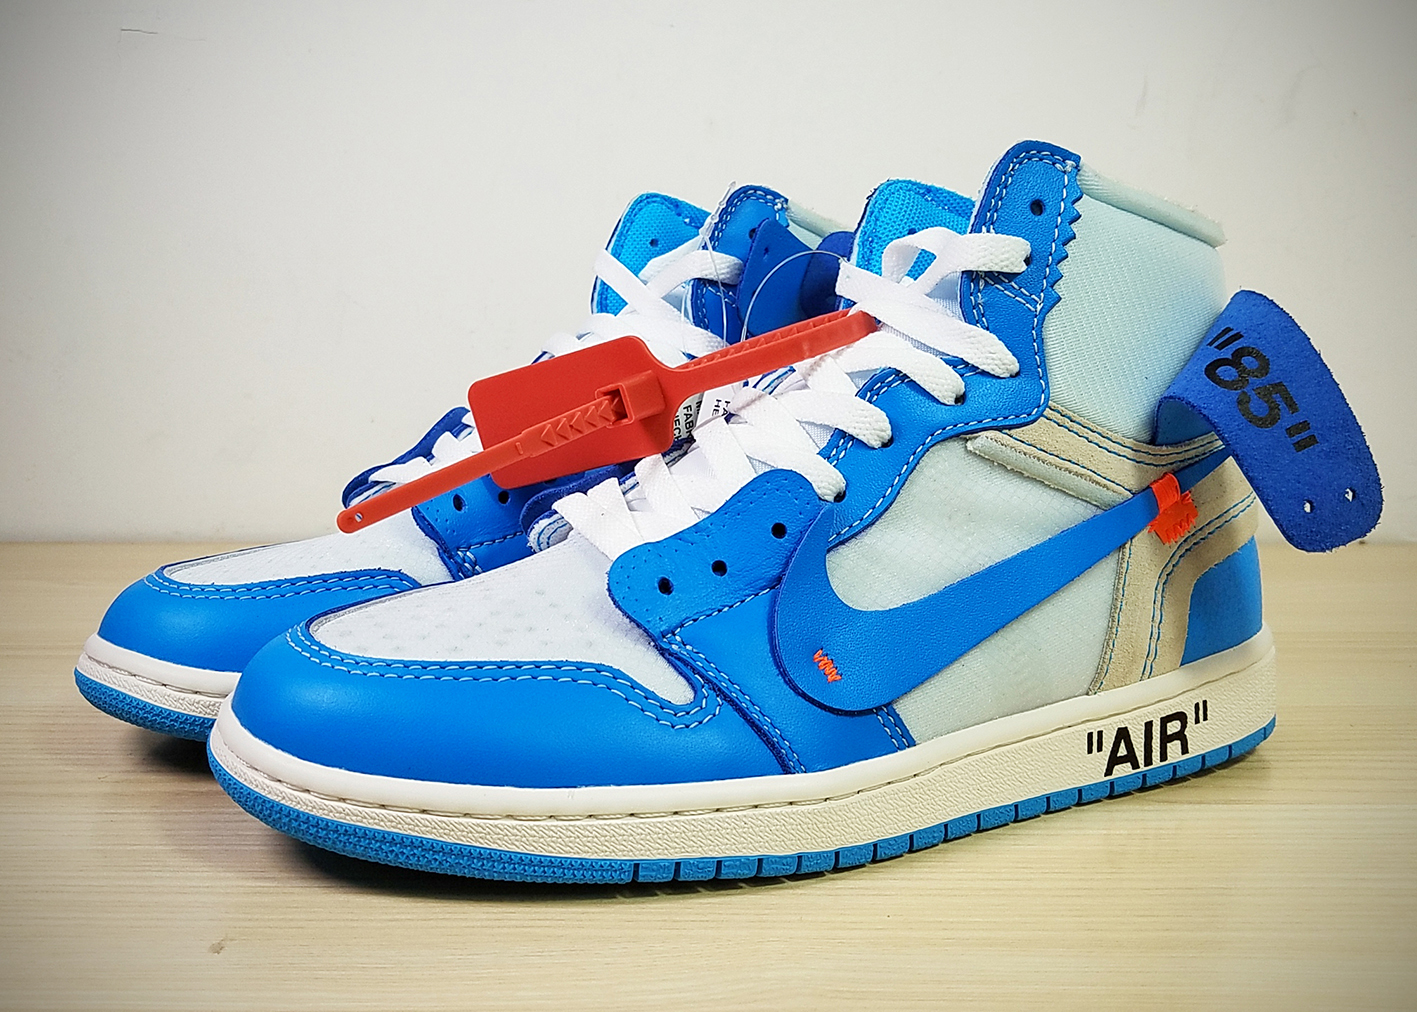 Newest Air Jordan 1 UNC Shoes